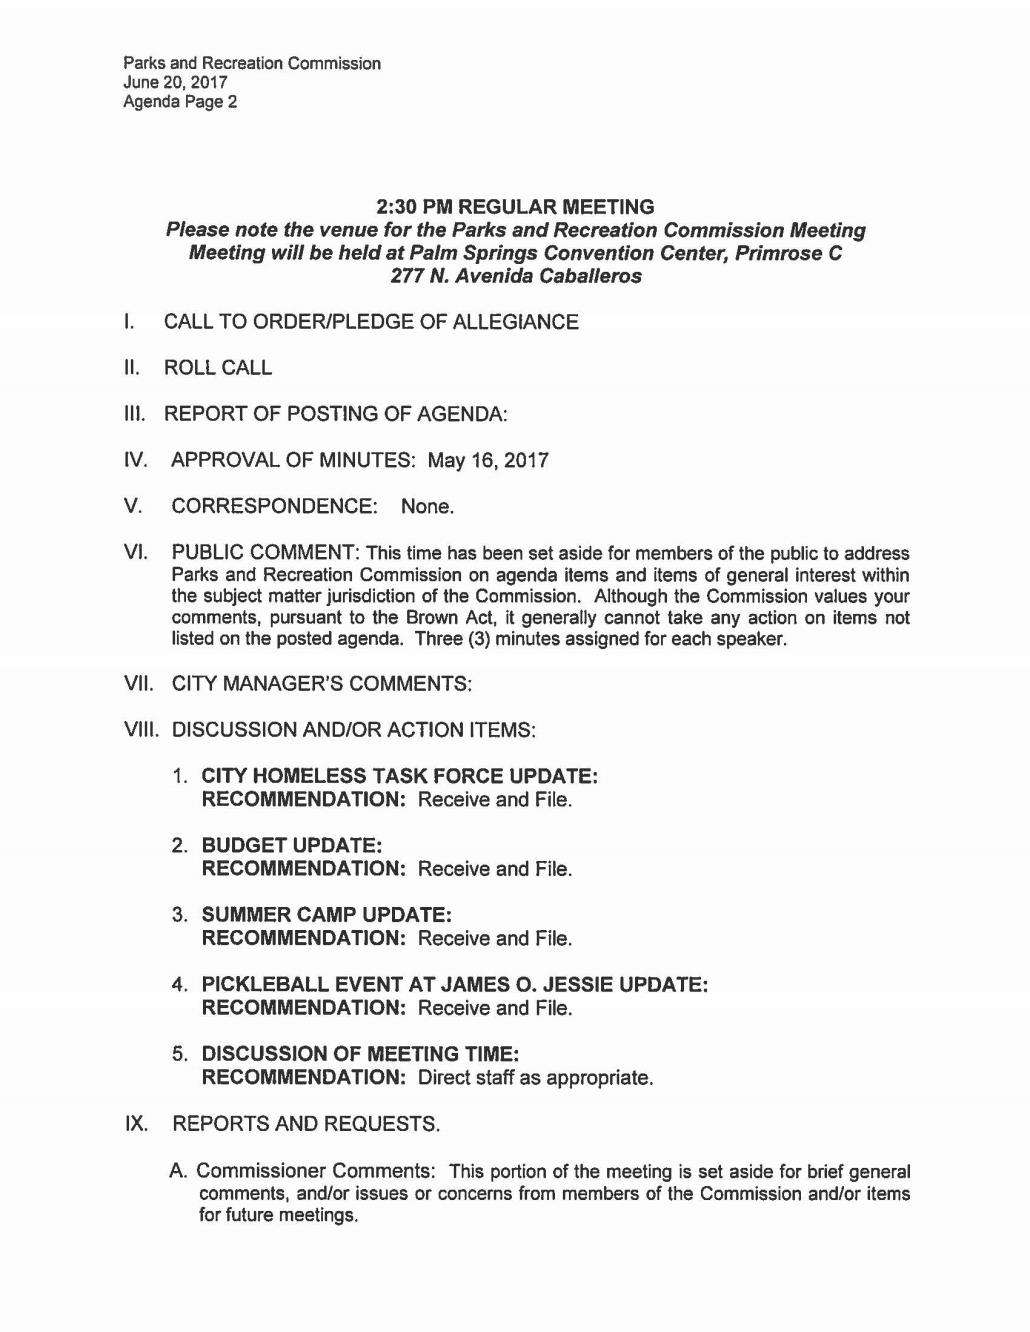 Parks&recreation agenda 06202017_Page_2